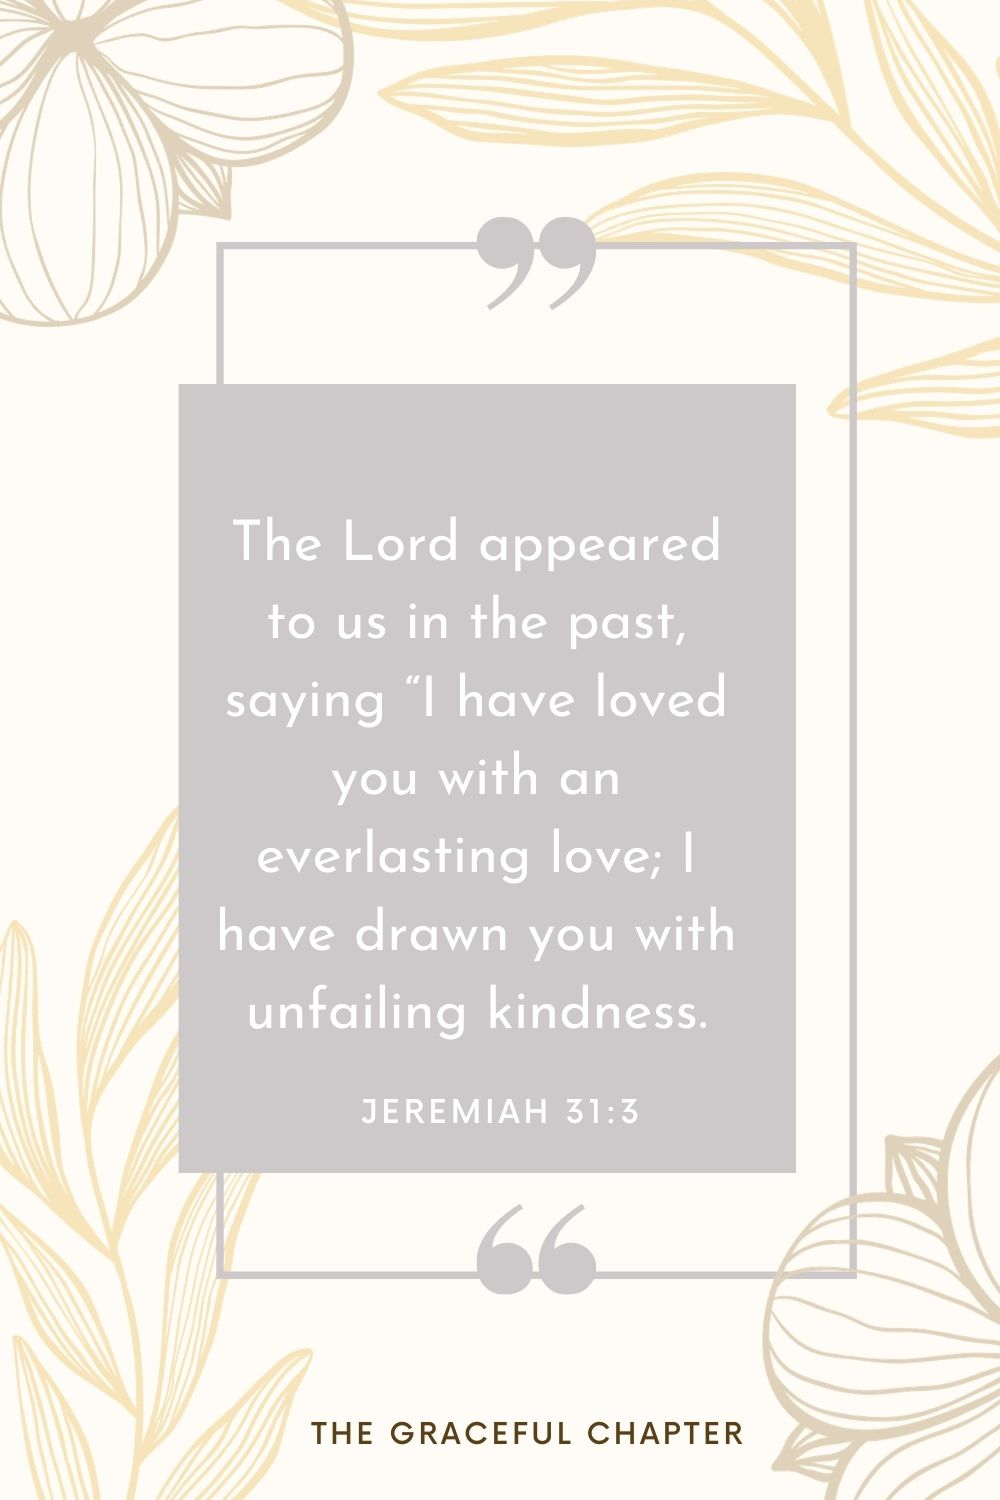 """The Lord appeared to us in the past, saying """"I have loved you with an everlasting love; I have drawn you with unfailing kindness. Jeremiah 31:3"""